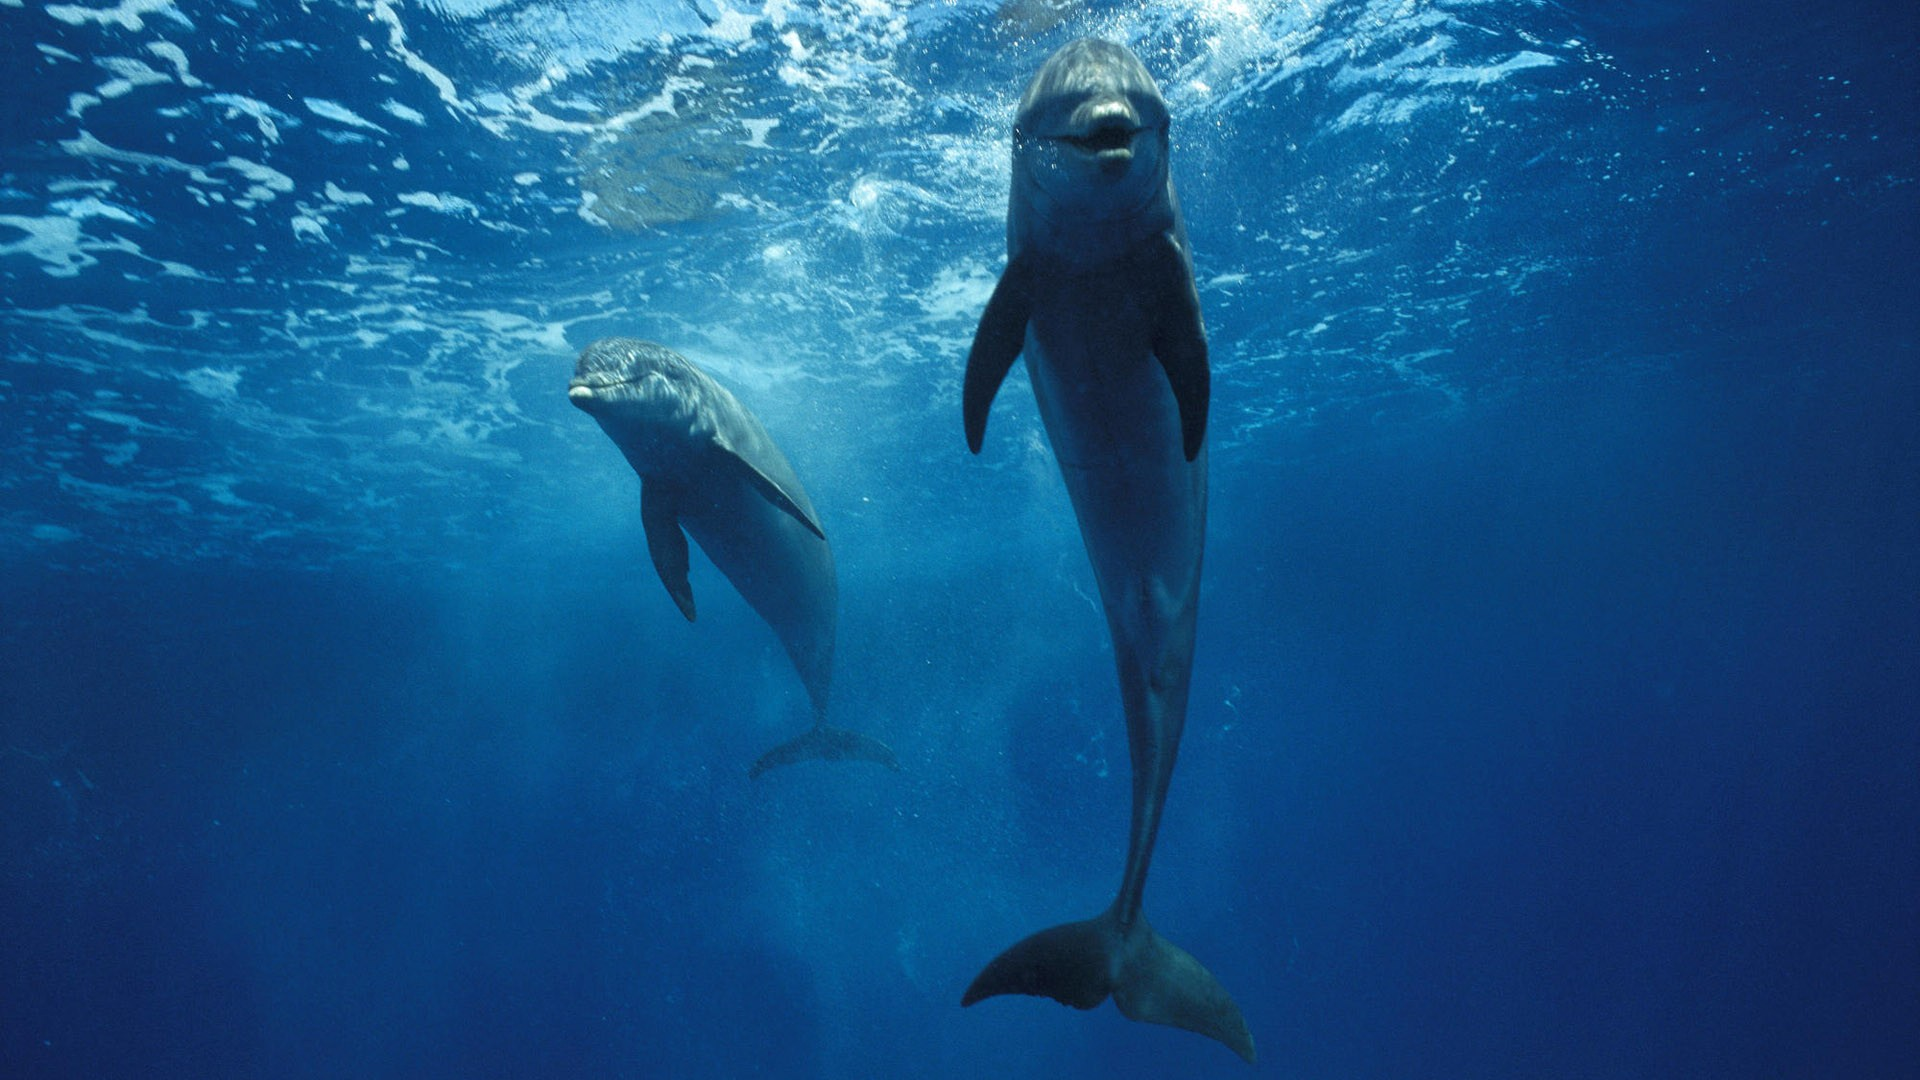 Desktop Backgrounds Dolphins Dolphins Dolphins Backgrounds 1920x1080